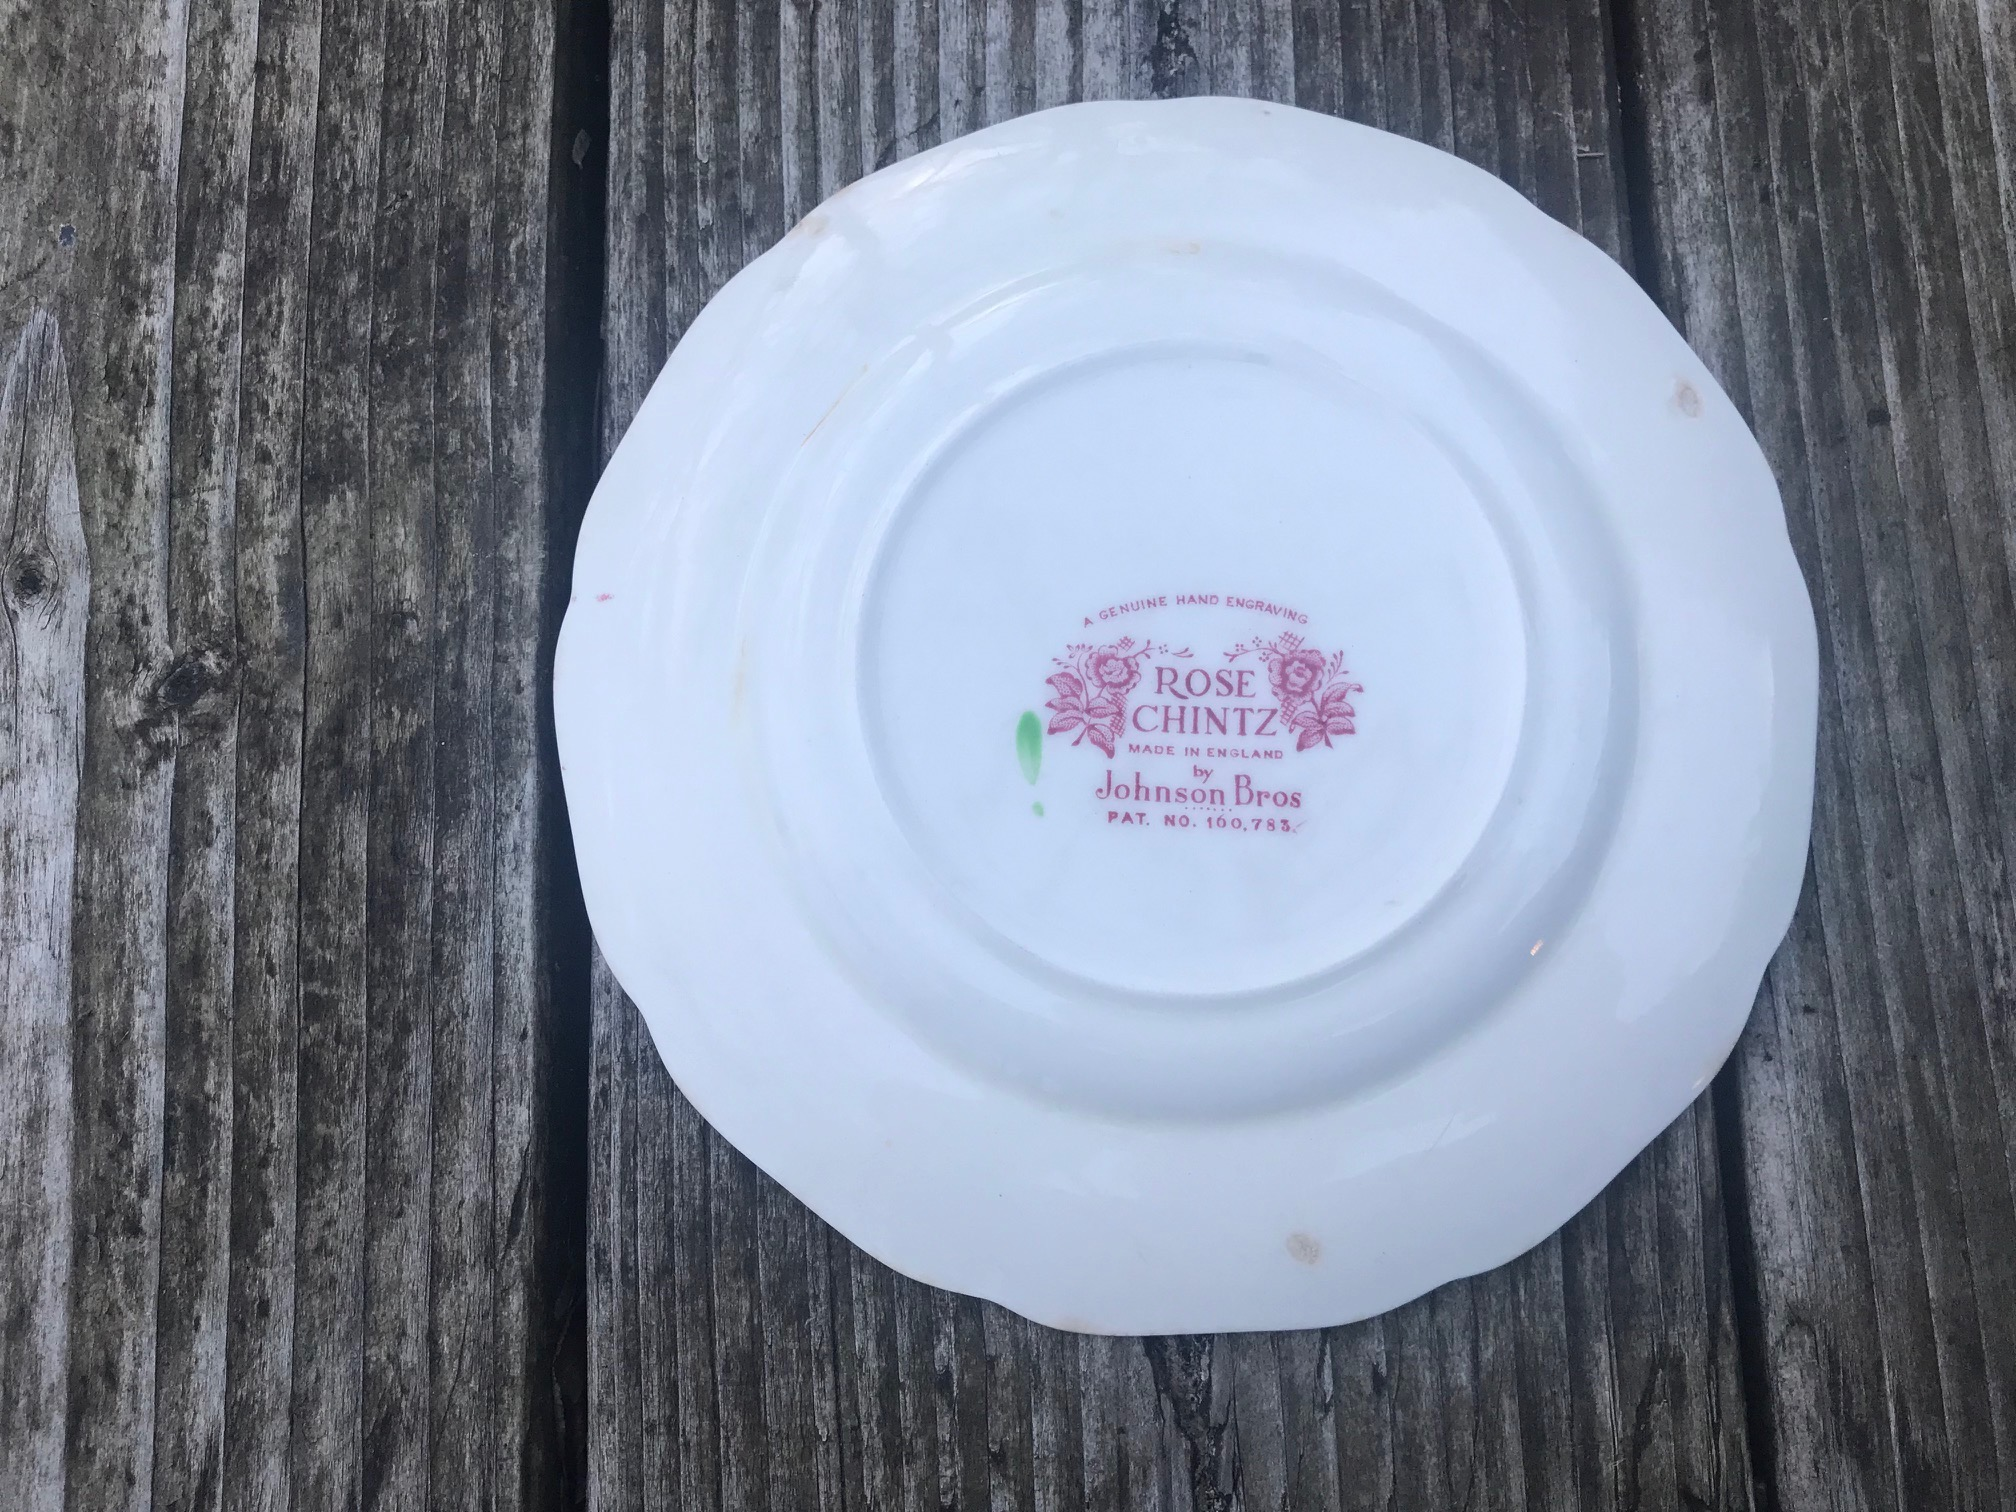 Johnson Brothers Rose Chintz Made In England Small China Plate: 49,300 ppm Lead [almost 5%!], 87 ppm Antimony. Johnson Brothers is almost always high lead.